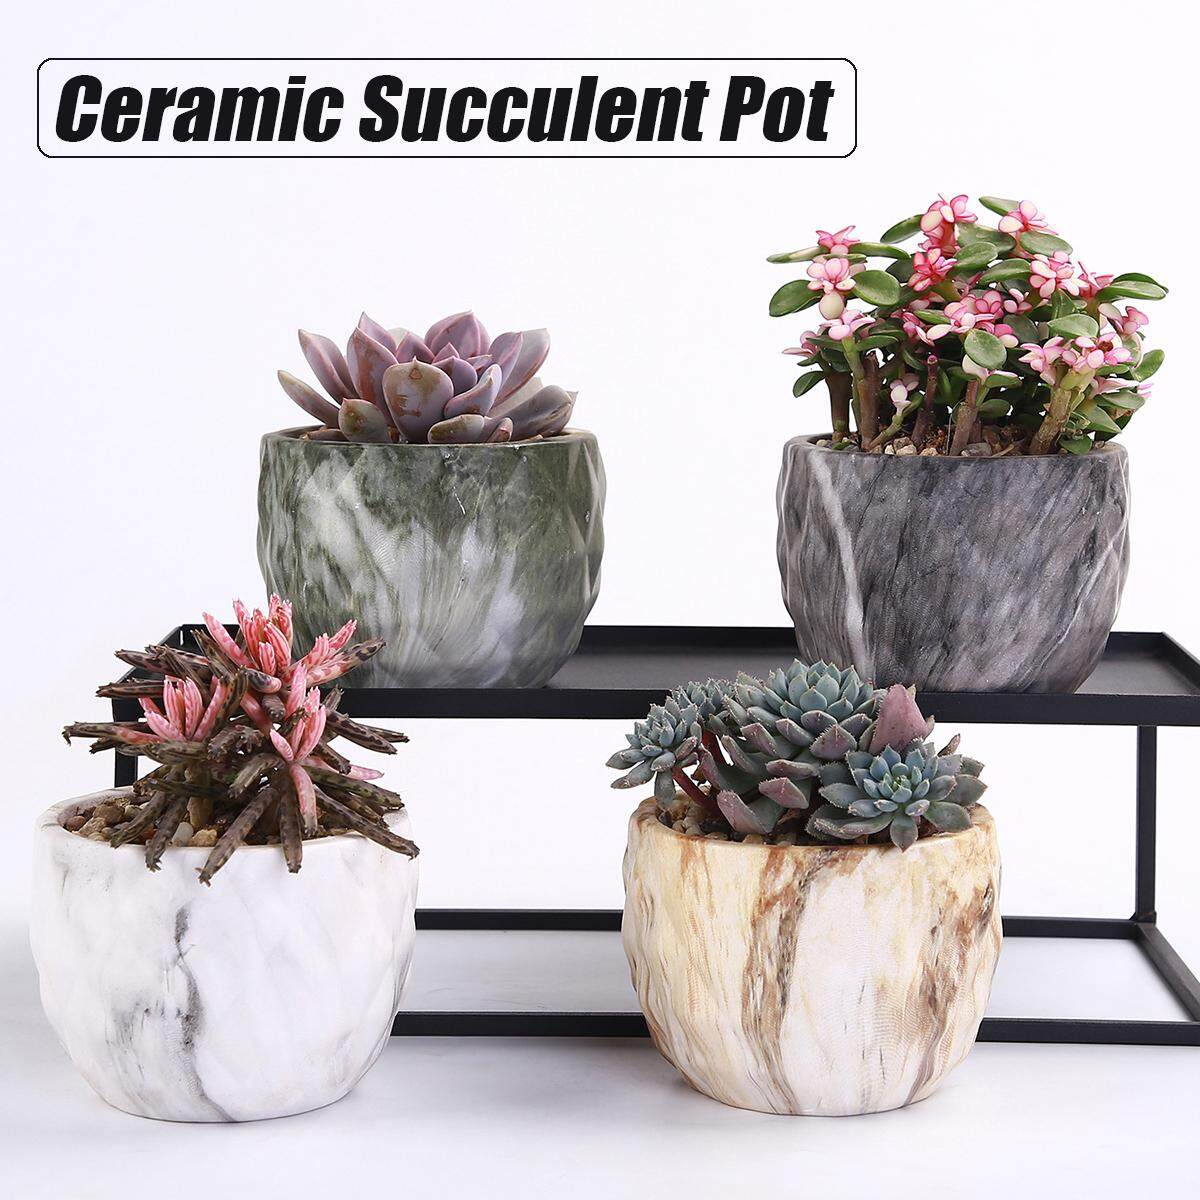 4pcs/set Ceramic Succulent Plant Pot Cactus Holder Stand Nordic Style 8.3x6.5cm (3.2x2.5)